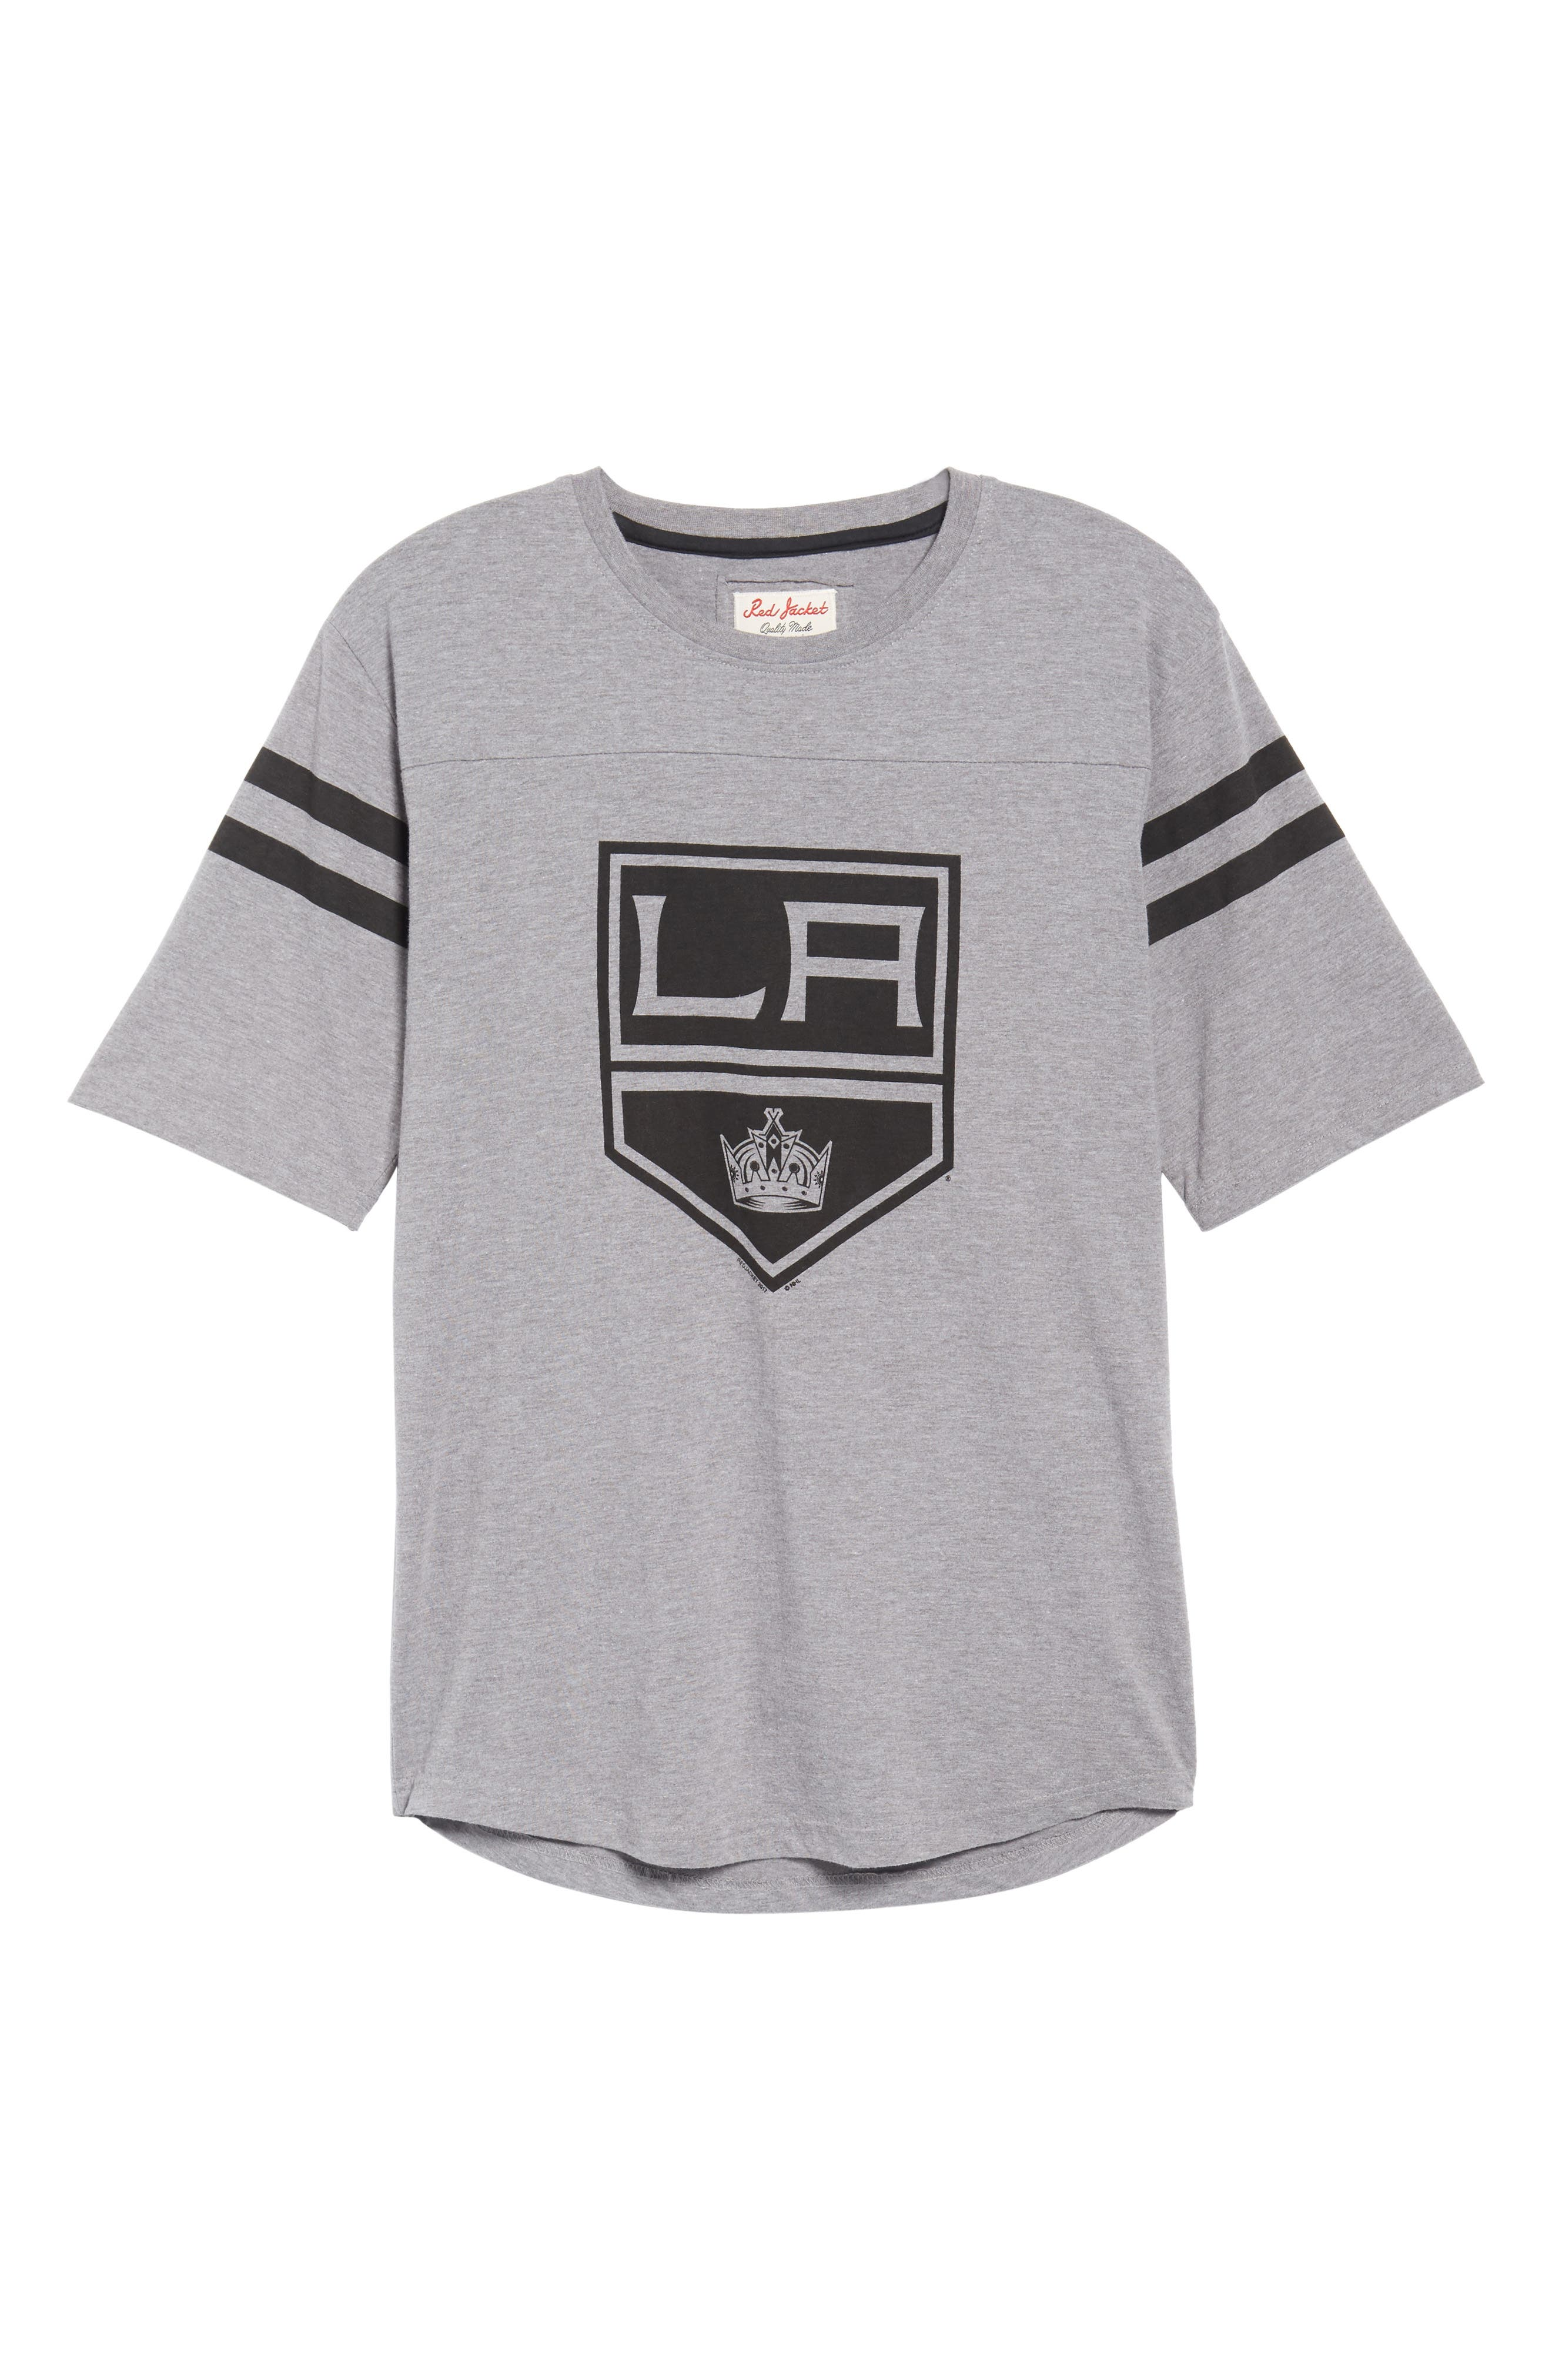 Crosby Los Angeles Kings T-Shirt,                             Alternate thumbnail 6, color,                             Heather Grey